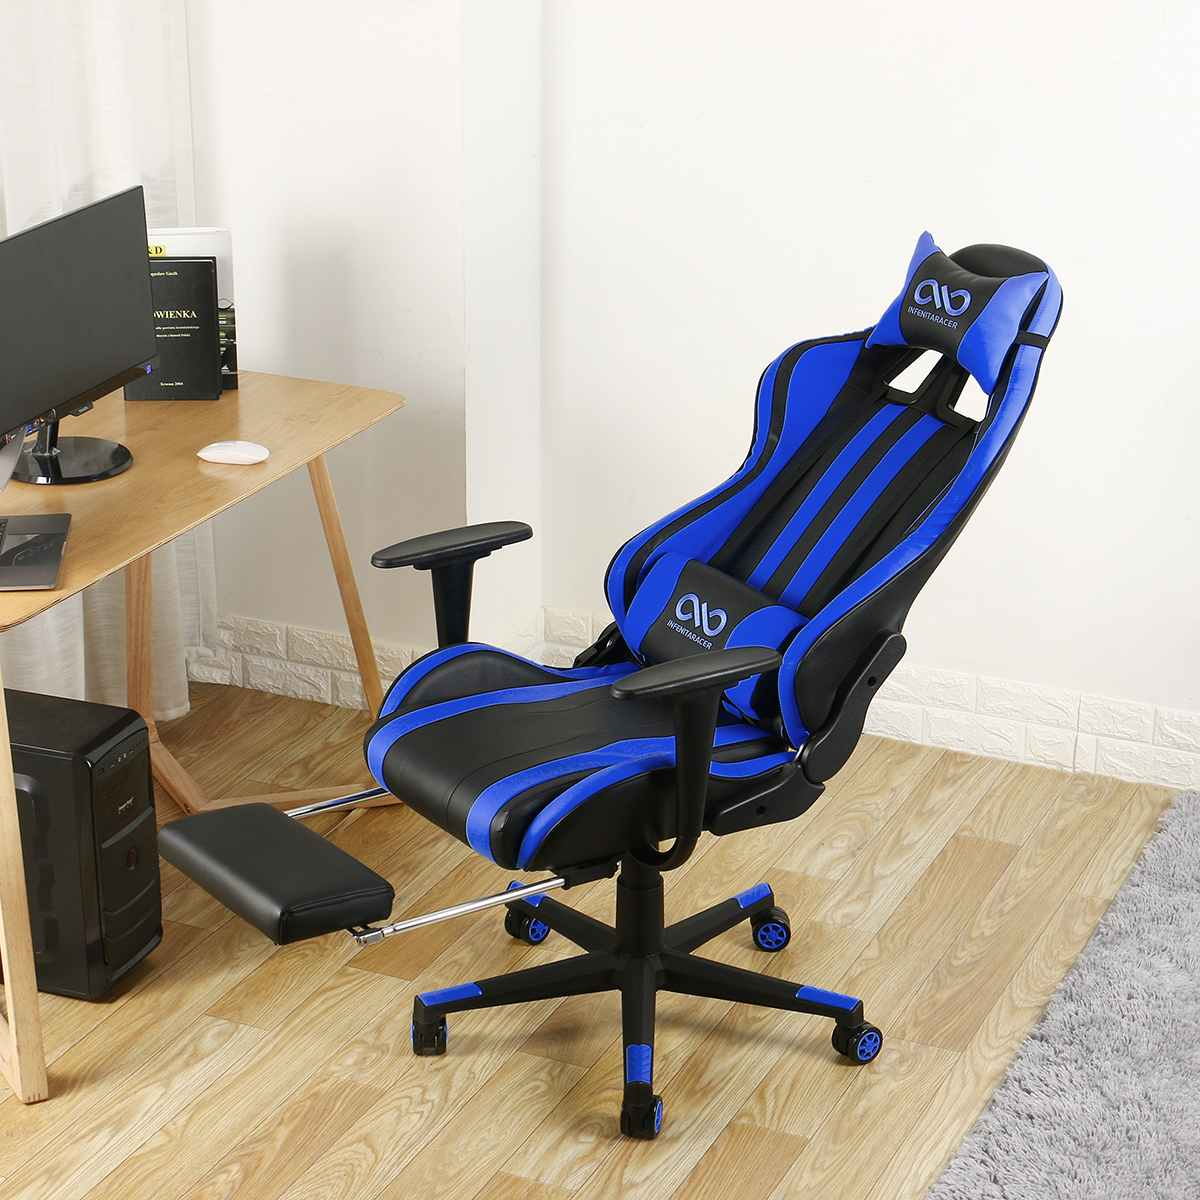 H785ef18604de4b4191e892bc93e9a2ba8 - Office Gaming Chair PVC Household Armchair Lift and Swivel Function Ergonomic Office Computer Chair Wcg Gamer Chairs